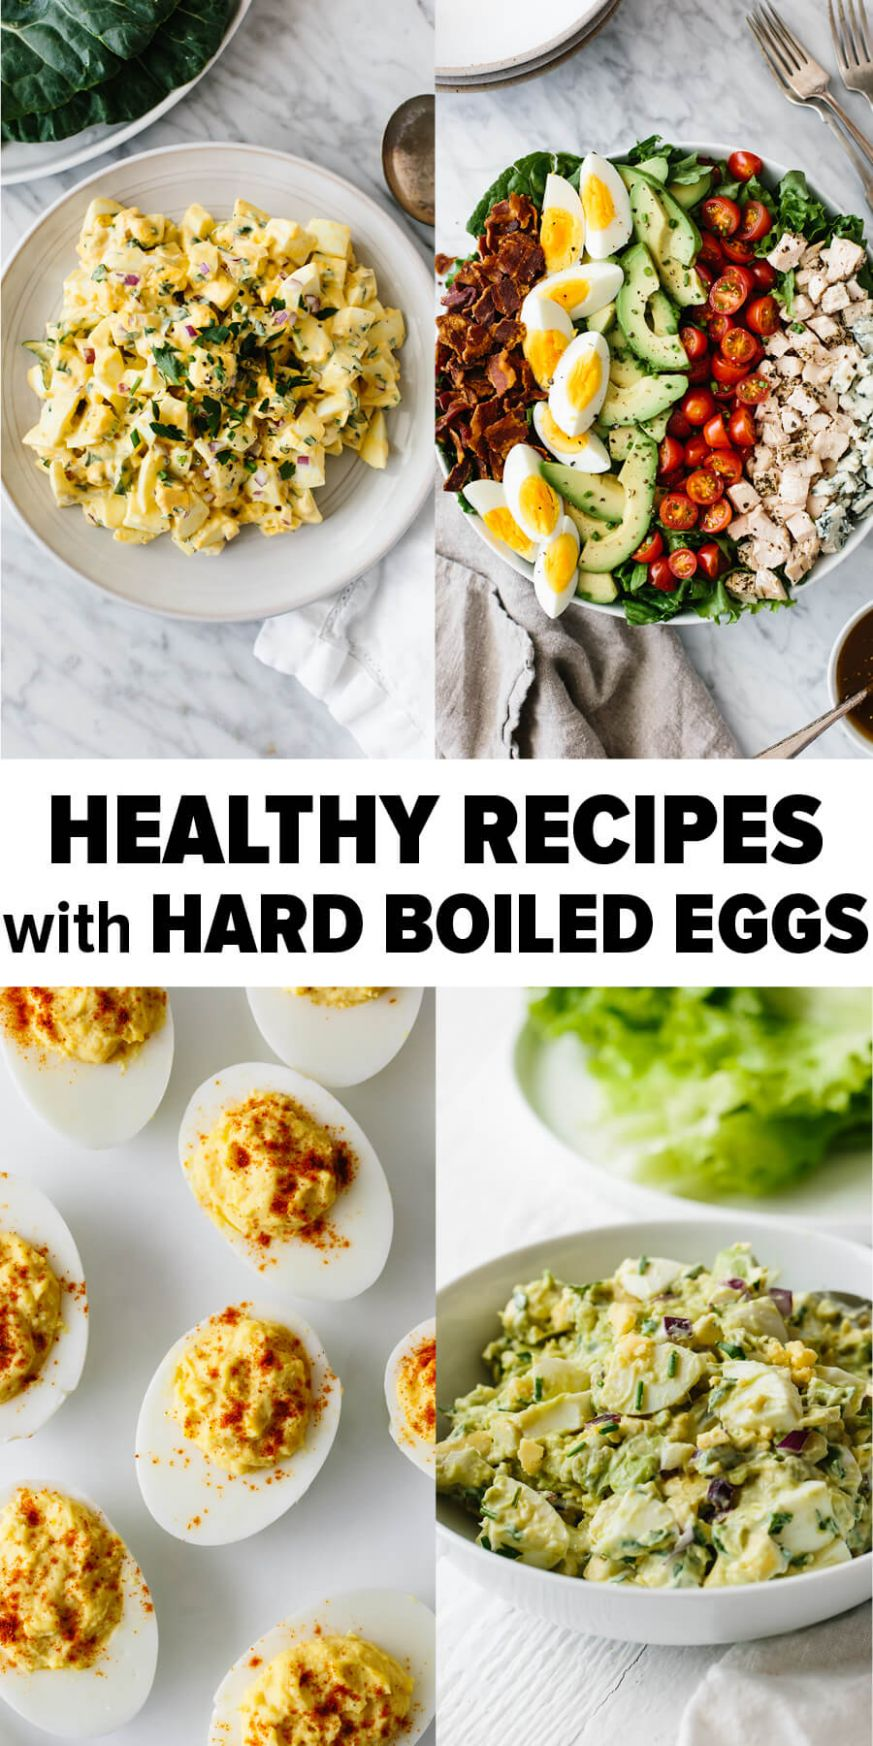 9 Healthy Recipes to Make with Hard Boiled Eggs | Downshiftology - Healthy Recipes Eggs